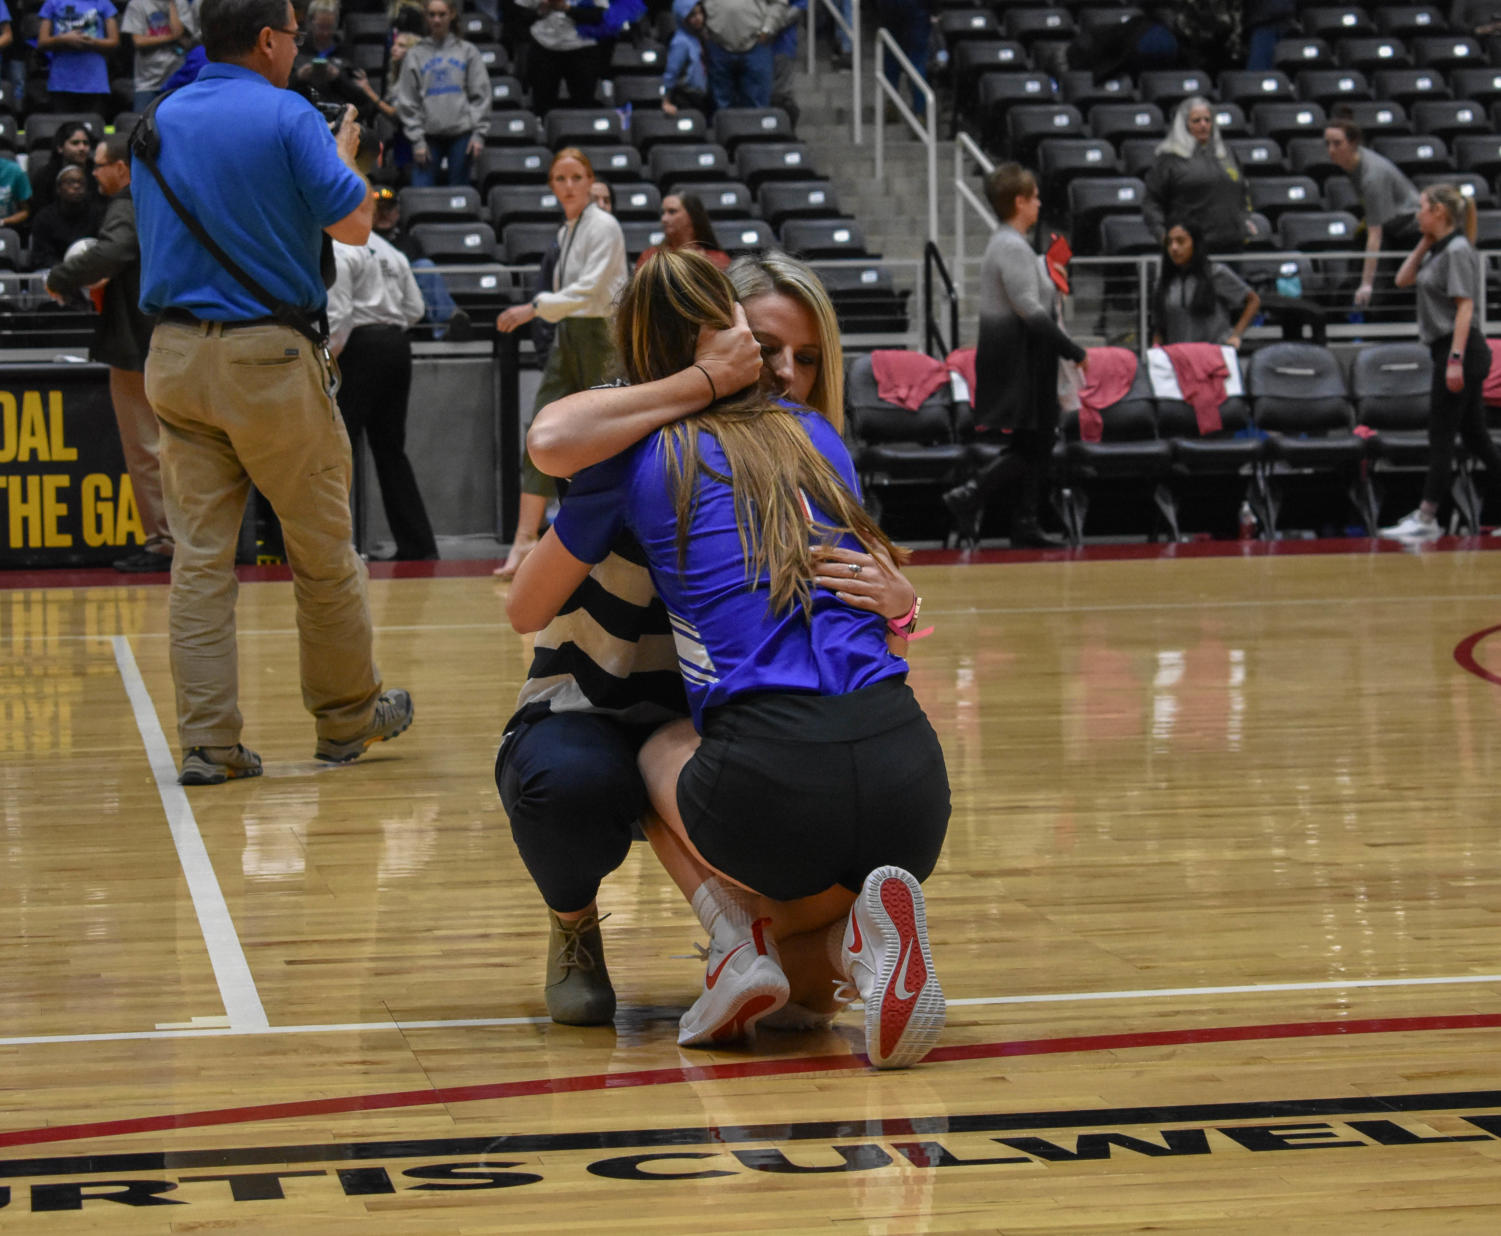 "Coach Lindsay Fallen comforts a player as the Jaguar volleyball team loses their final game. ""It was a heartbreaking loss, but moments like this are so rare and beautiful!"" Lindsay Fallen said. Kaylee Keasler (12) had just played in her last volleyball game ever, and her JV coach of two years did all she could to be there."